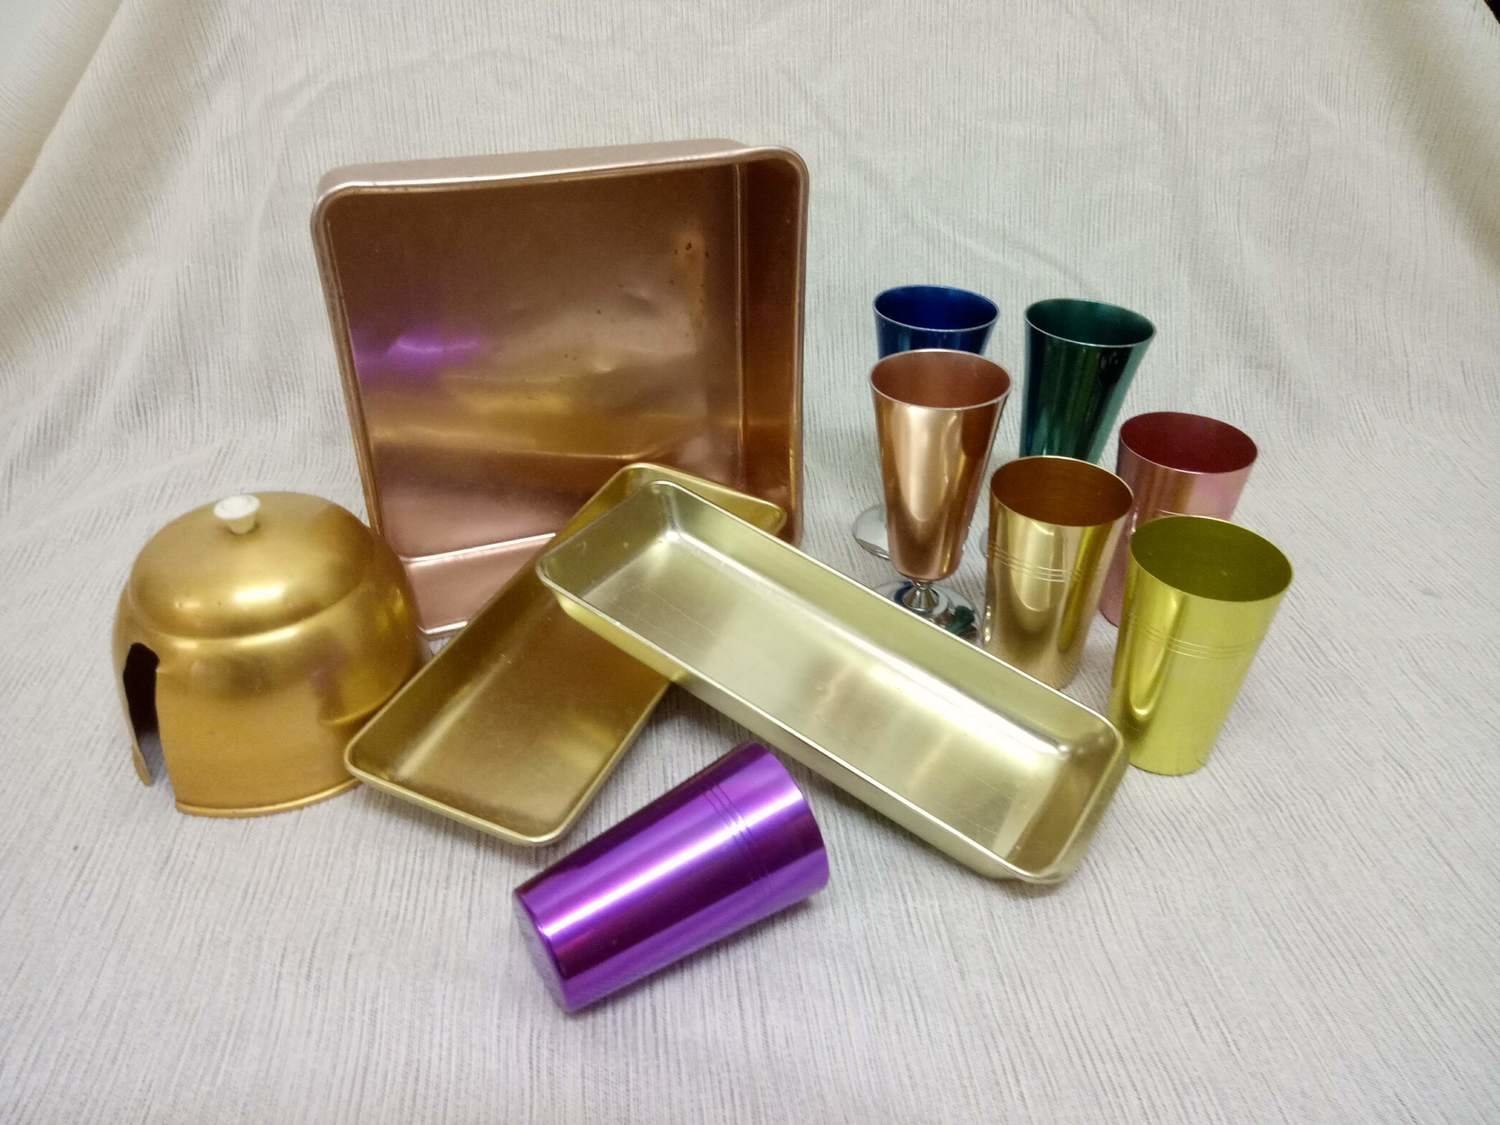 Lot of Anodized Items #400-12